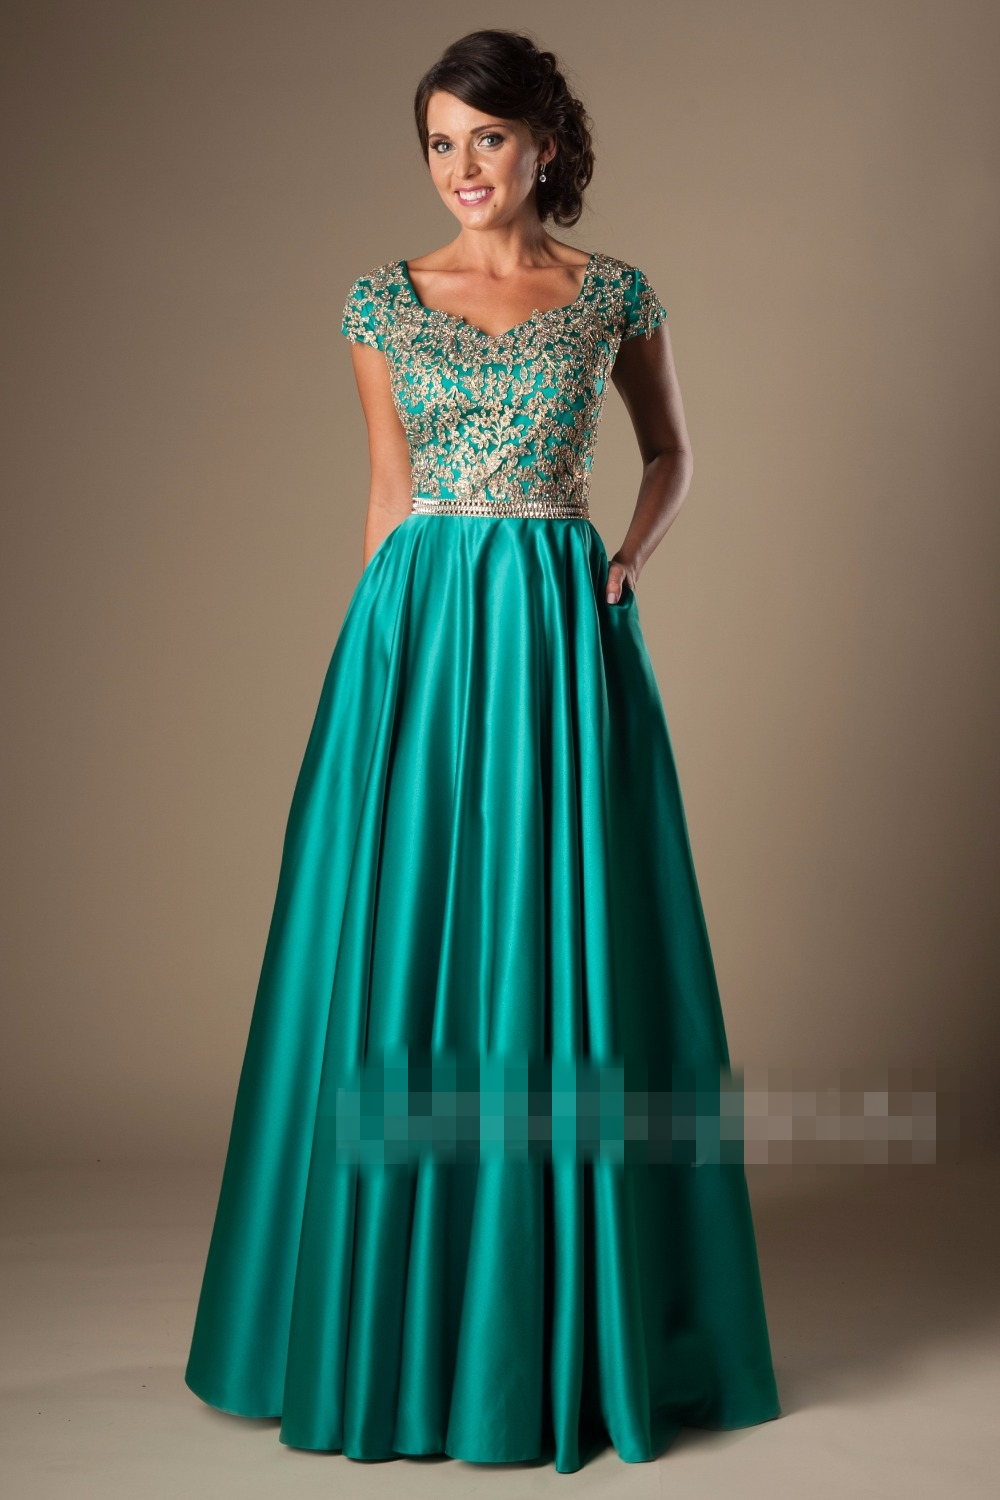 Turquoise and Gold Prom Dress – fashion dresses